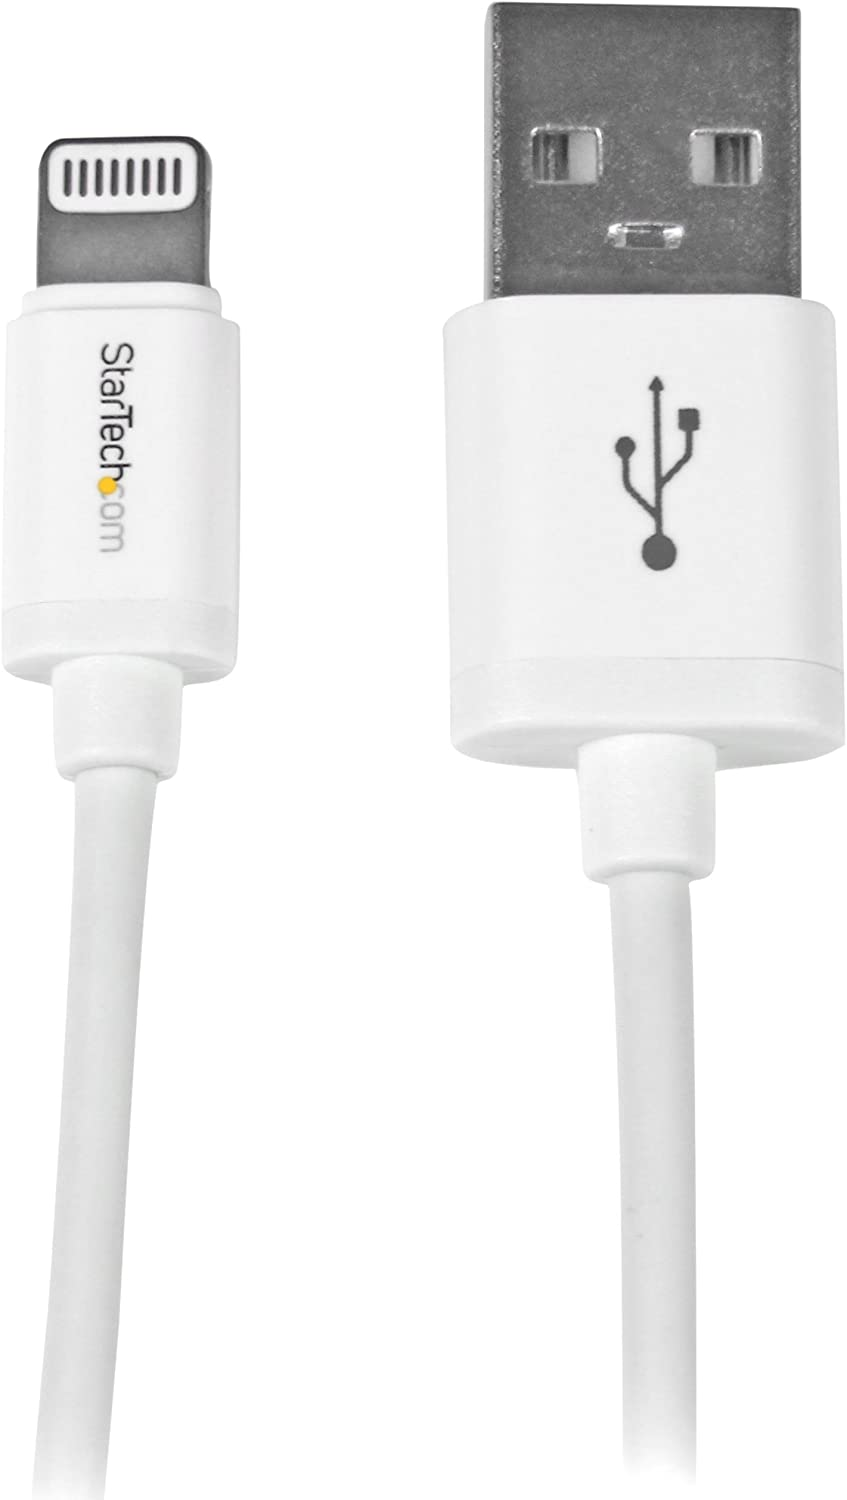 StarTech.com 15cm (6in) Short White Apple 8-pin Lightning Connector to USB Cable for iPhone/iPod/iPad - Charge and Sync Cable (USBLT15CMW)